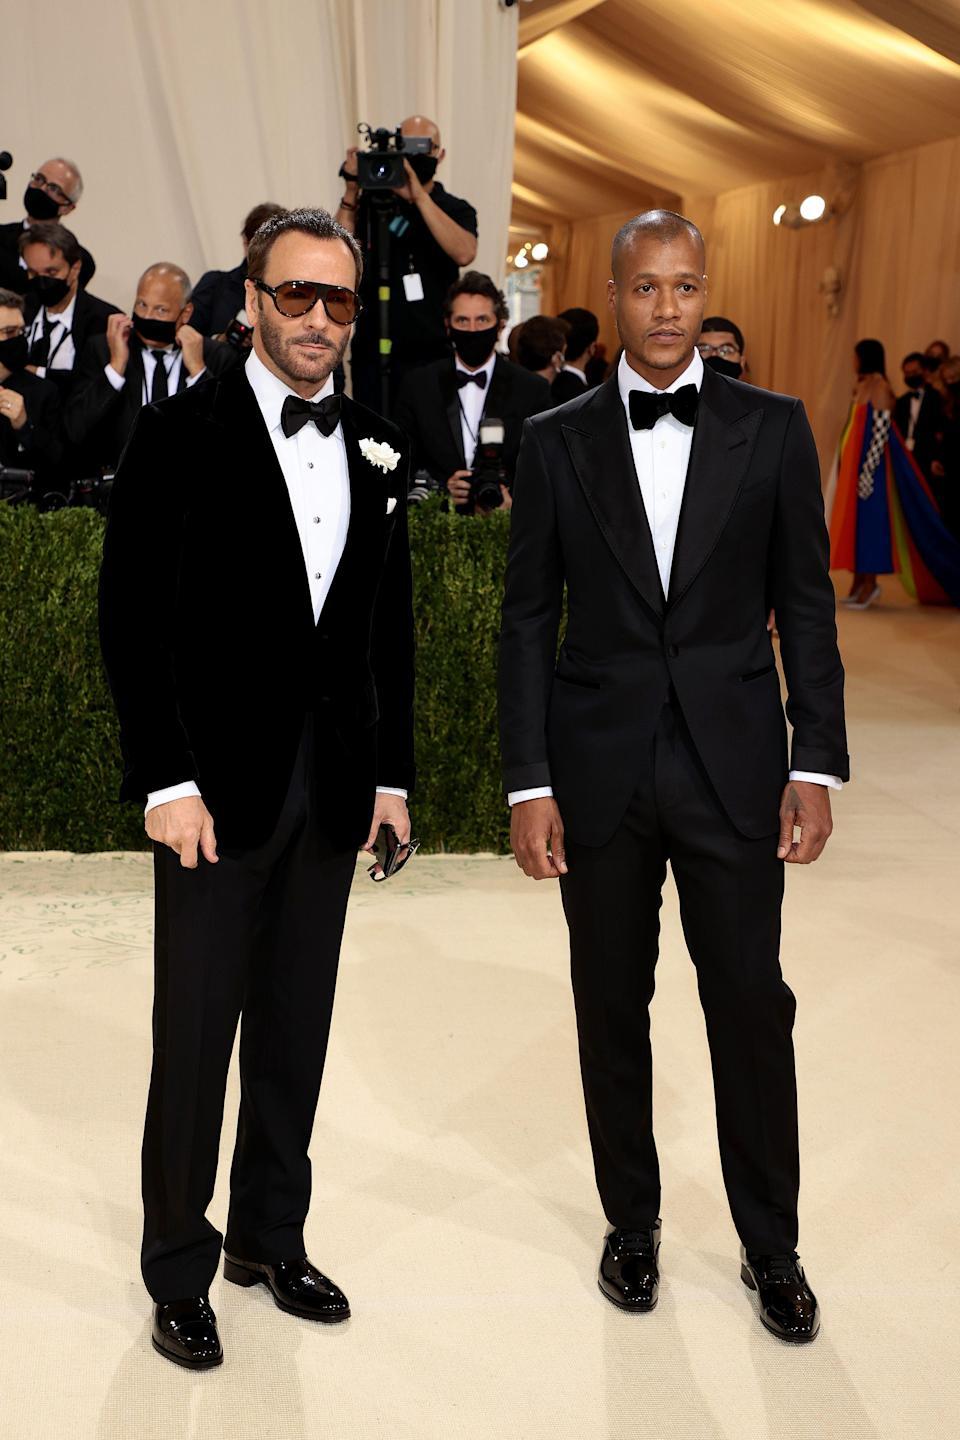 """<p>There's nothing quite like the Met Gala. <a href=""""https://www.esquire.com/uk/style/a27381979/how-harry-styles-conquered-the-met-gala-2019/"""" rel=""""nofollow noopener"""" target=""""_blank"""" data-ylk=""""slk:Harry Styles reinvented the girl (or guy) with a pearl earring"""" class=""""link rapid-noclick-resp"""">Harry Styles reinvented the girl (or guy) with a pearl earring</a>. Billy Porter entered on a Sedan chair. Jennifer Lopez did a butterfly crawl through the fountain of youth before donning Catholic bodycon from Balmain. It is, in short, a nuts evening – and a good sort of nuts. But for the very lucky (and very famous) people who receive an invite, cracking the list of the best-dressed men and women of the evening is a difficult task.</p><p>Difficult, but not impossible. Because as fashion's favourite fancy dress party, celebrities, and the designers that bring them along, pull out all the stops to hit the theme and break the internet. And as for the dress code for this year's event? 'In America: A Lexicon of Fashion'. Which means the good, the great and the groundbreaking from across the pond. Ralph Lauren. Stars and stripes. <a href=""""https://www.esquire.com/uk/style/a29785620/style-archive-ralph-lauren-very-ralph-hbo-sky-atlantic-documentary/"""" rel=""""nofollow noopener"""" target=""""_blank"""" data-ylk=""""slk:Ralph Lauren"""" class=""""link rapid-noclick-resp"""">Ralph Lauren</a>. Legal weed. That sort of thing. </p><p>Since President Biden still won't let us in, Esquire is reporting live from London to bring you all the action and all of the best-dressed guests from the Met Gala 2021. And you better strap in, sunshine; after a fallow year, the Met Gala 2021 is all but guaranteed to be a mad one. <br></p>"""